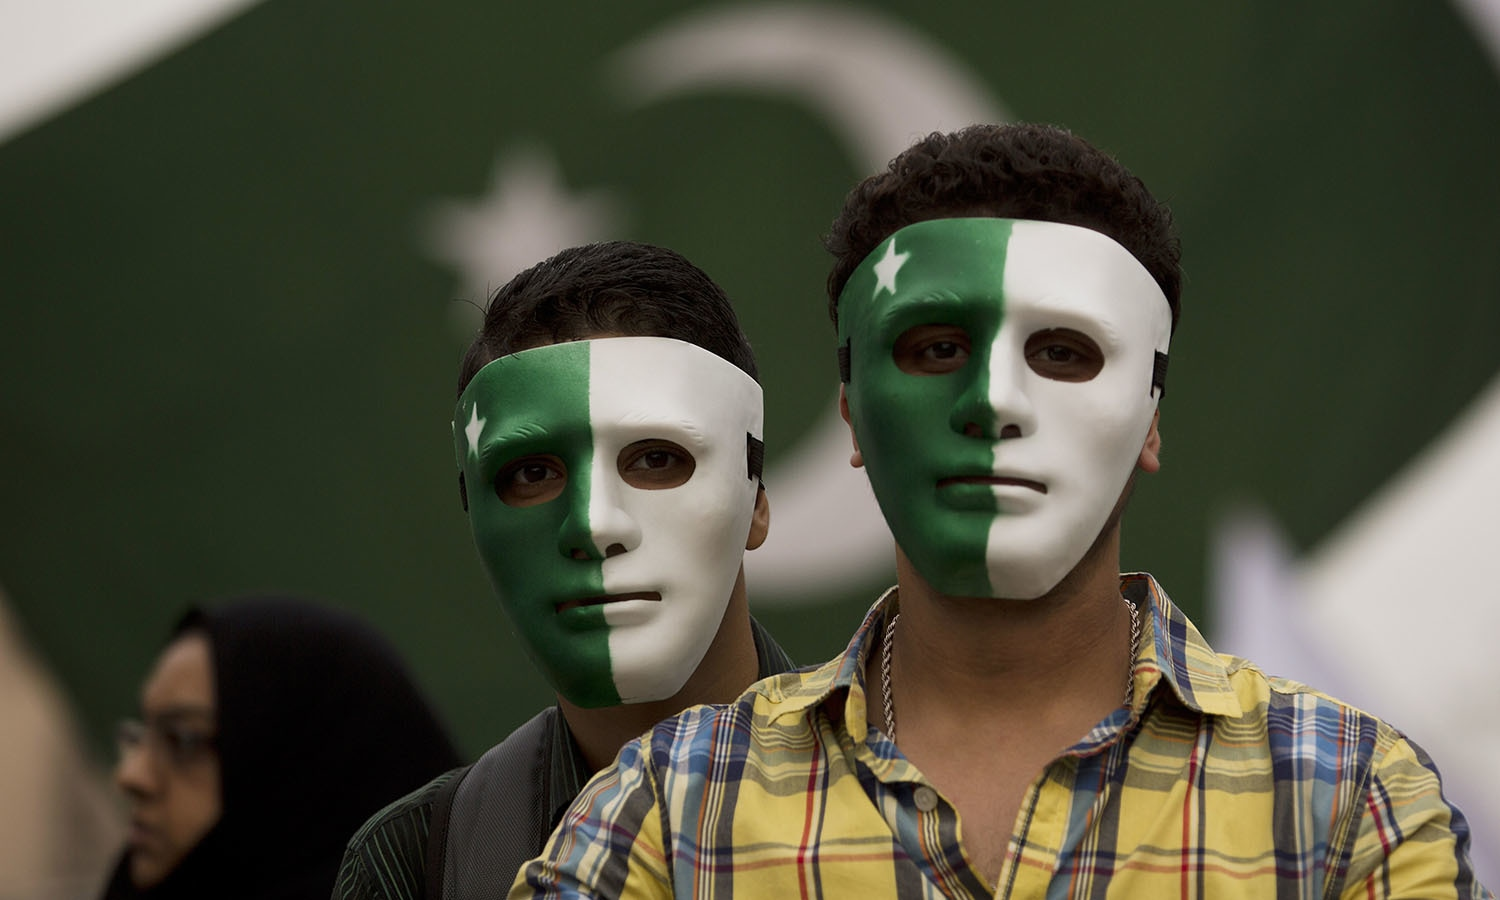 Youngsters wear masks painted in the design of the national flag. — AP